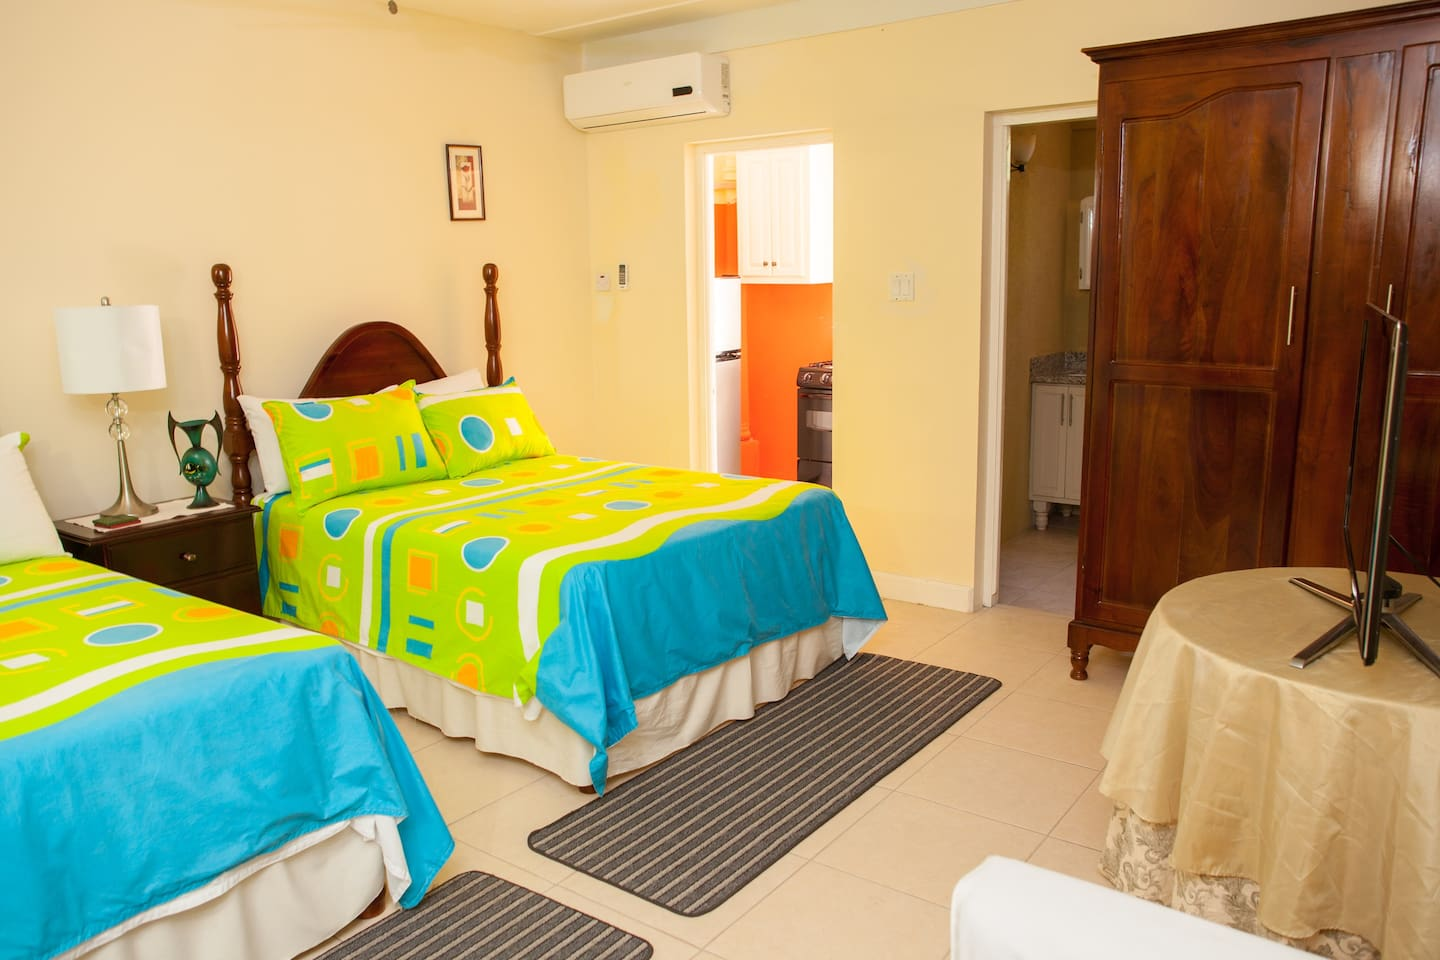 Ide A Wile-studio - Apartments for Rent in Ocho Rios